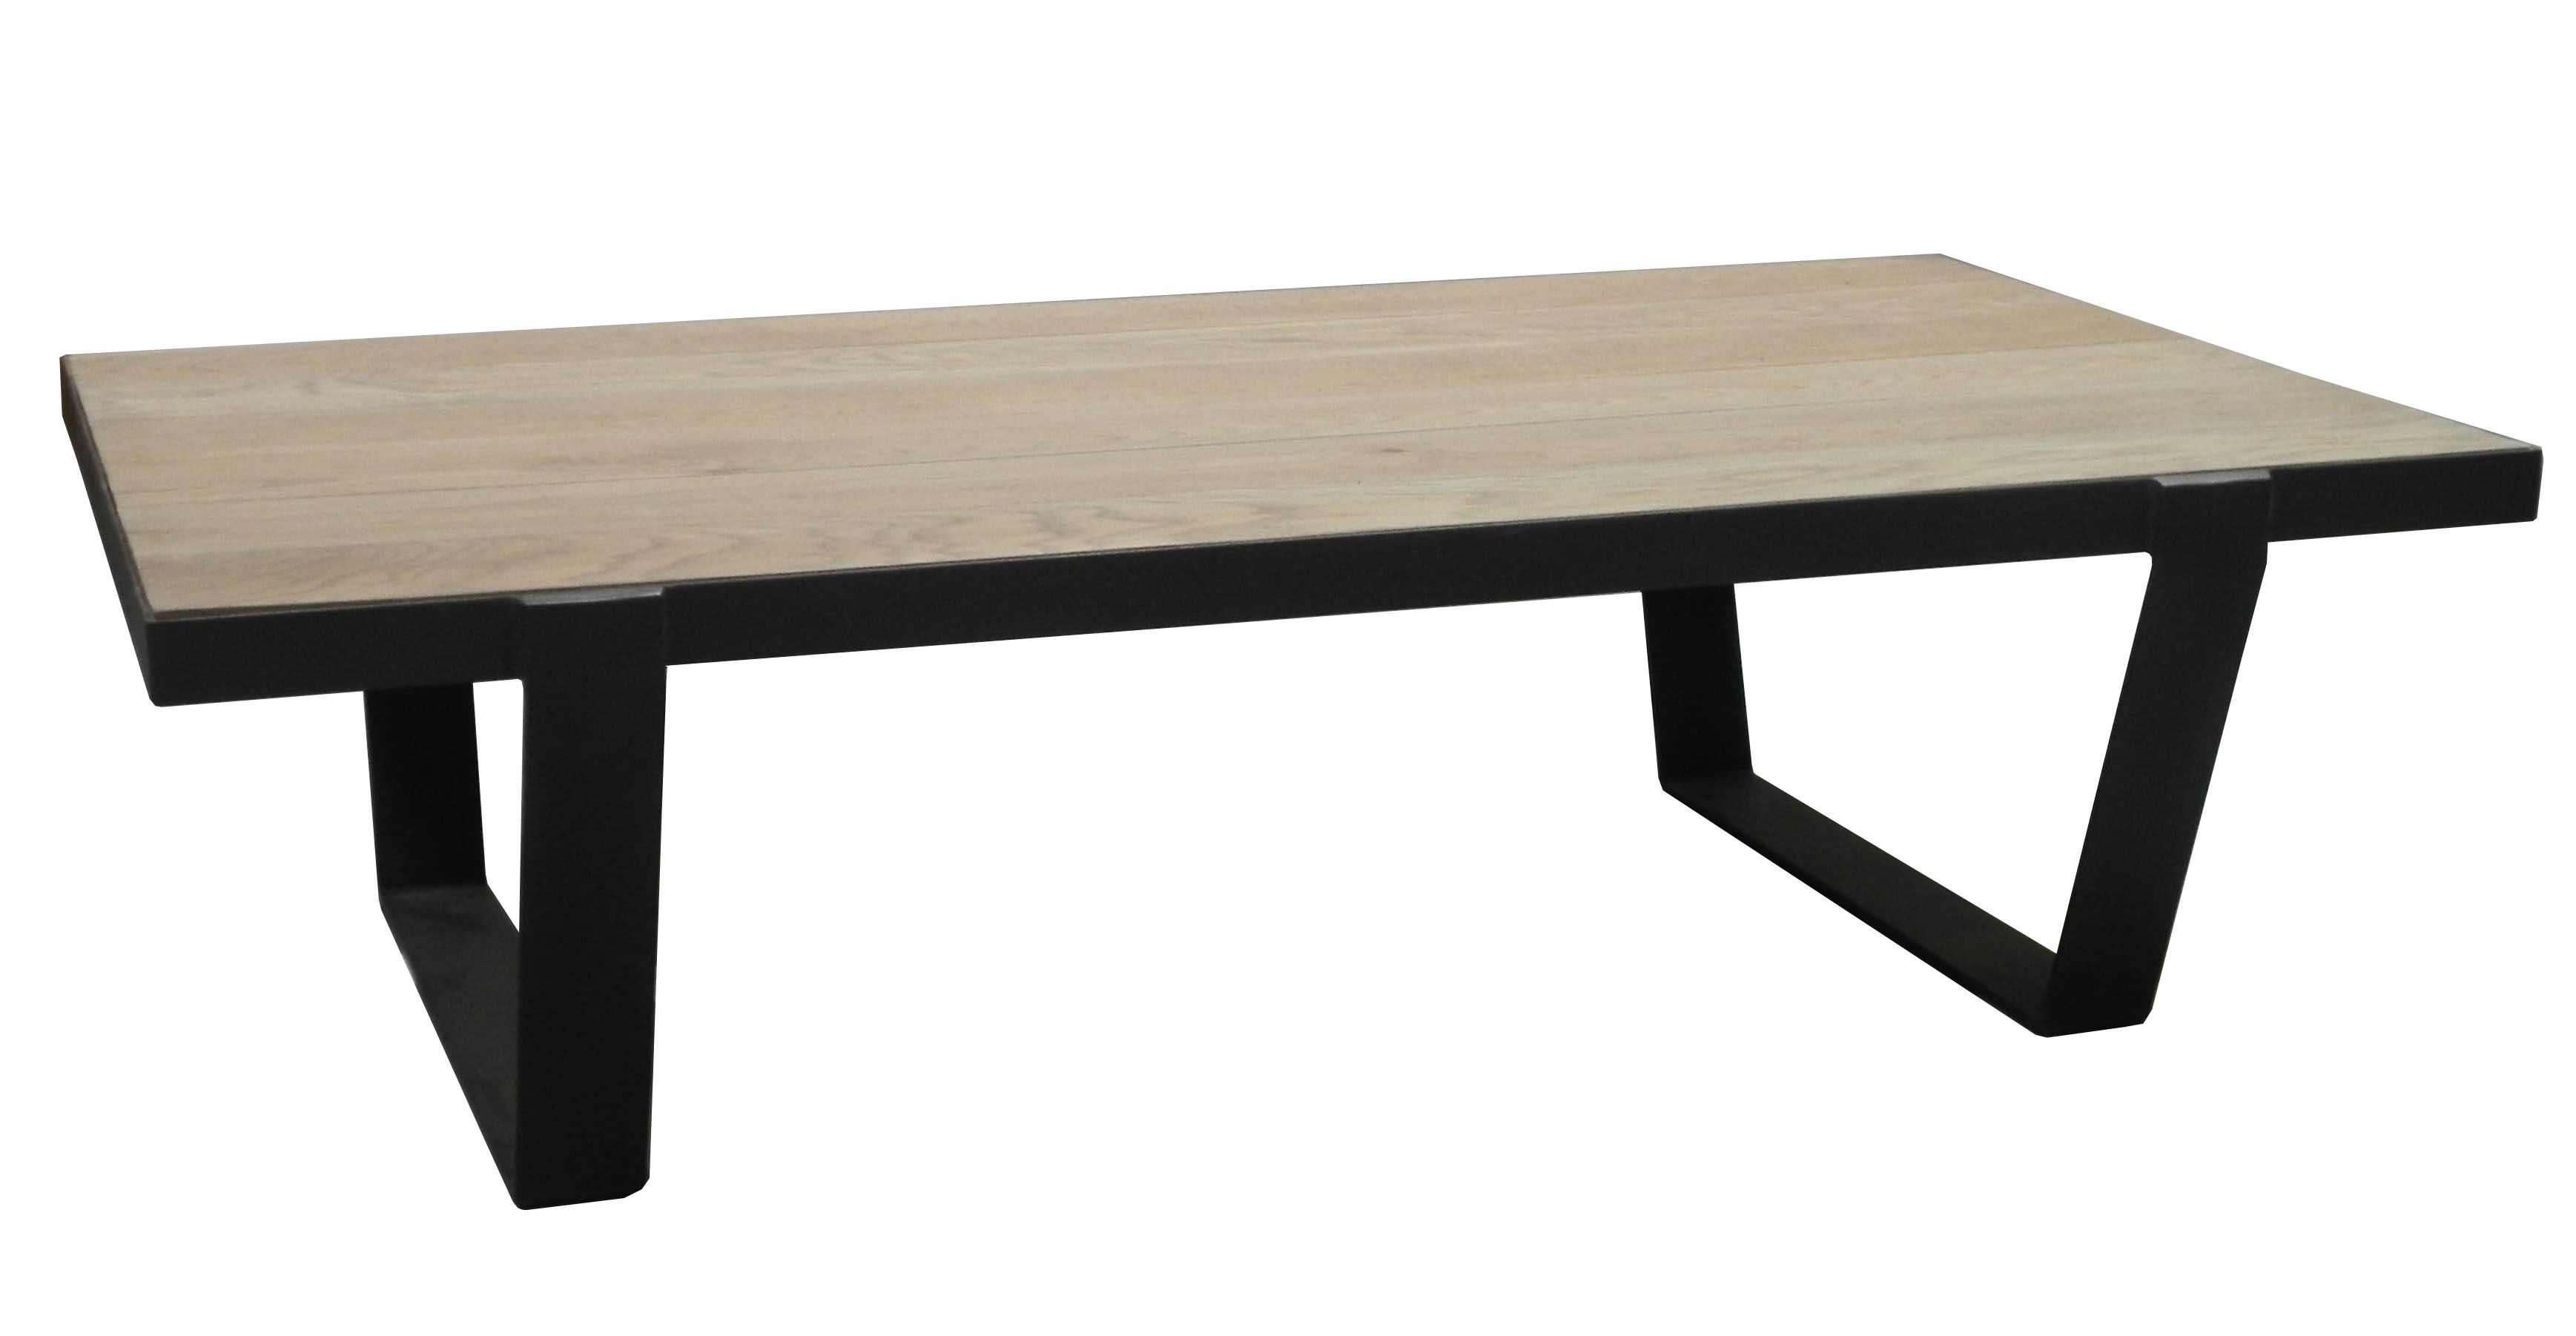 Table Basse Chene Massif Metal Soomaa Ref 30020864 En 2020 Table